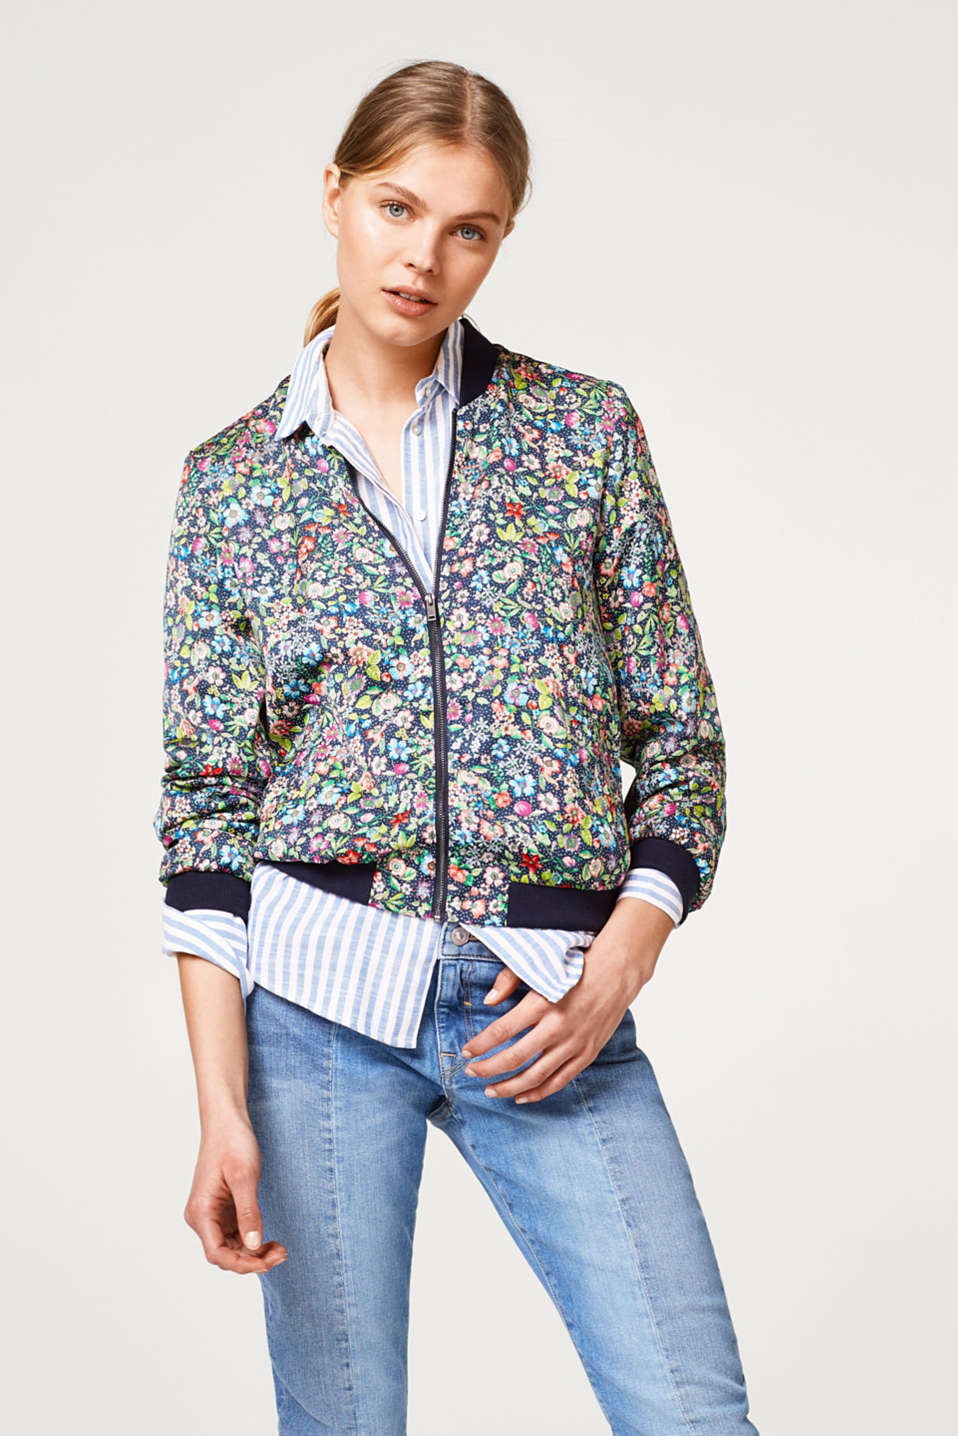 Esprit - Lightweight bomber jacket with a colourful floral print